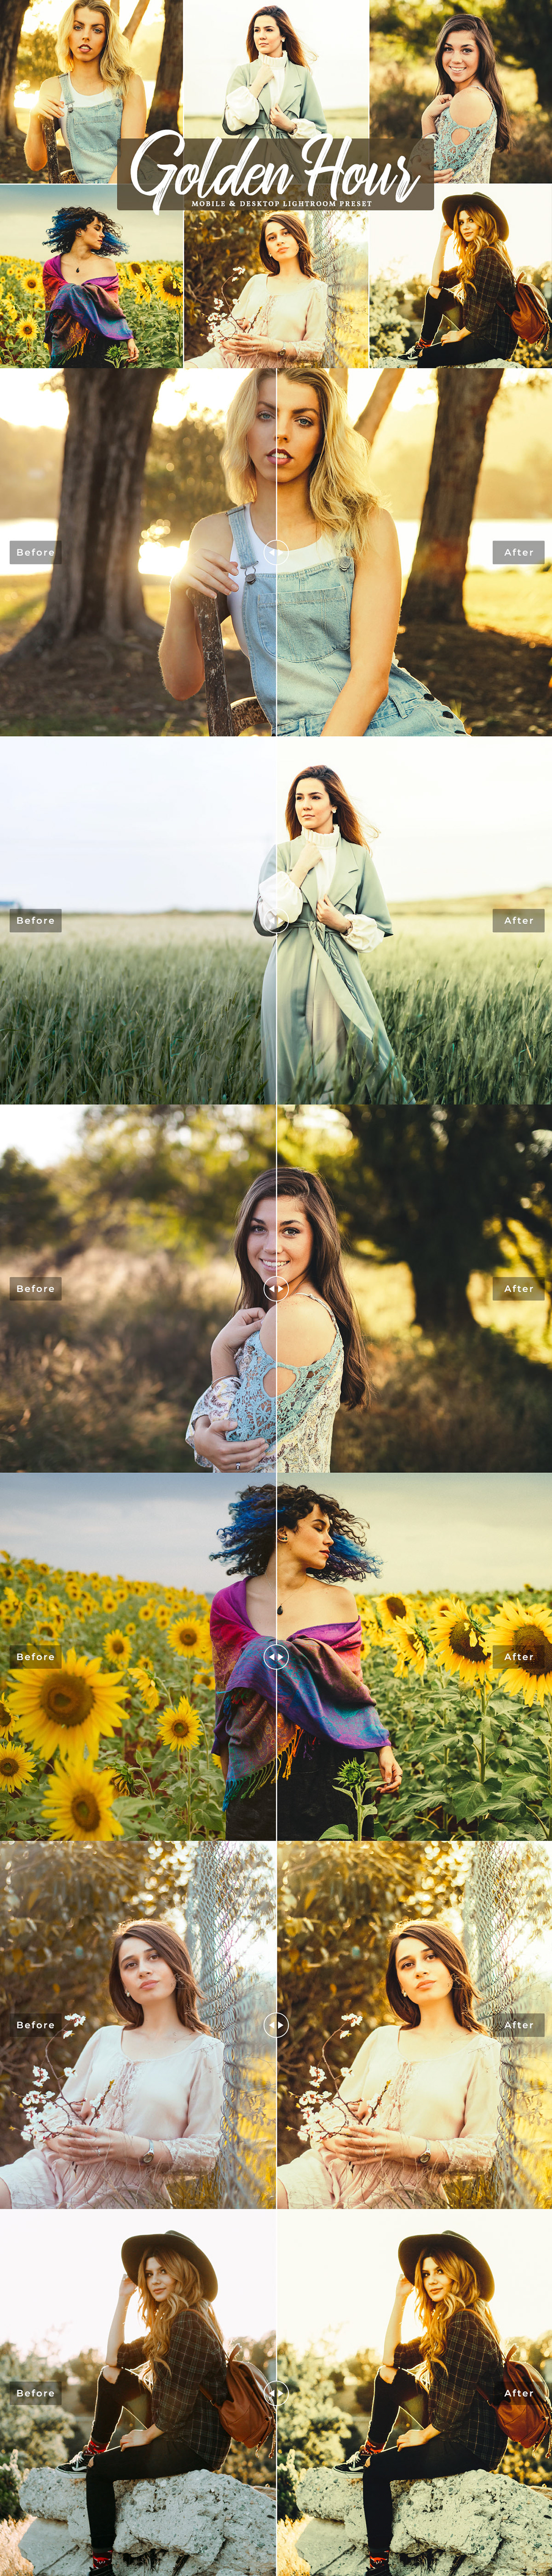 Free Golden Hour Mobile & Desktop Lightroom Preset on Wacom